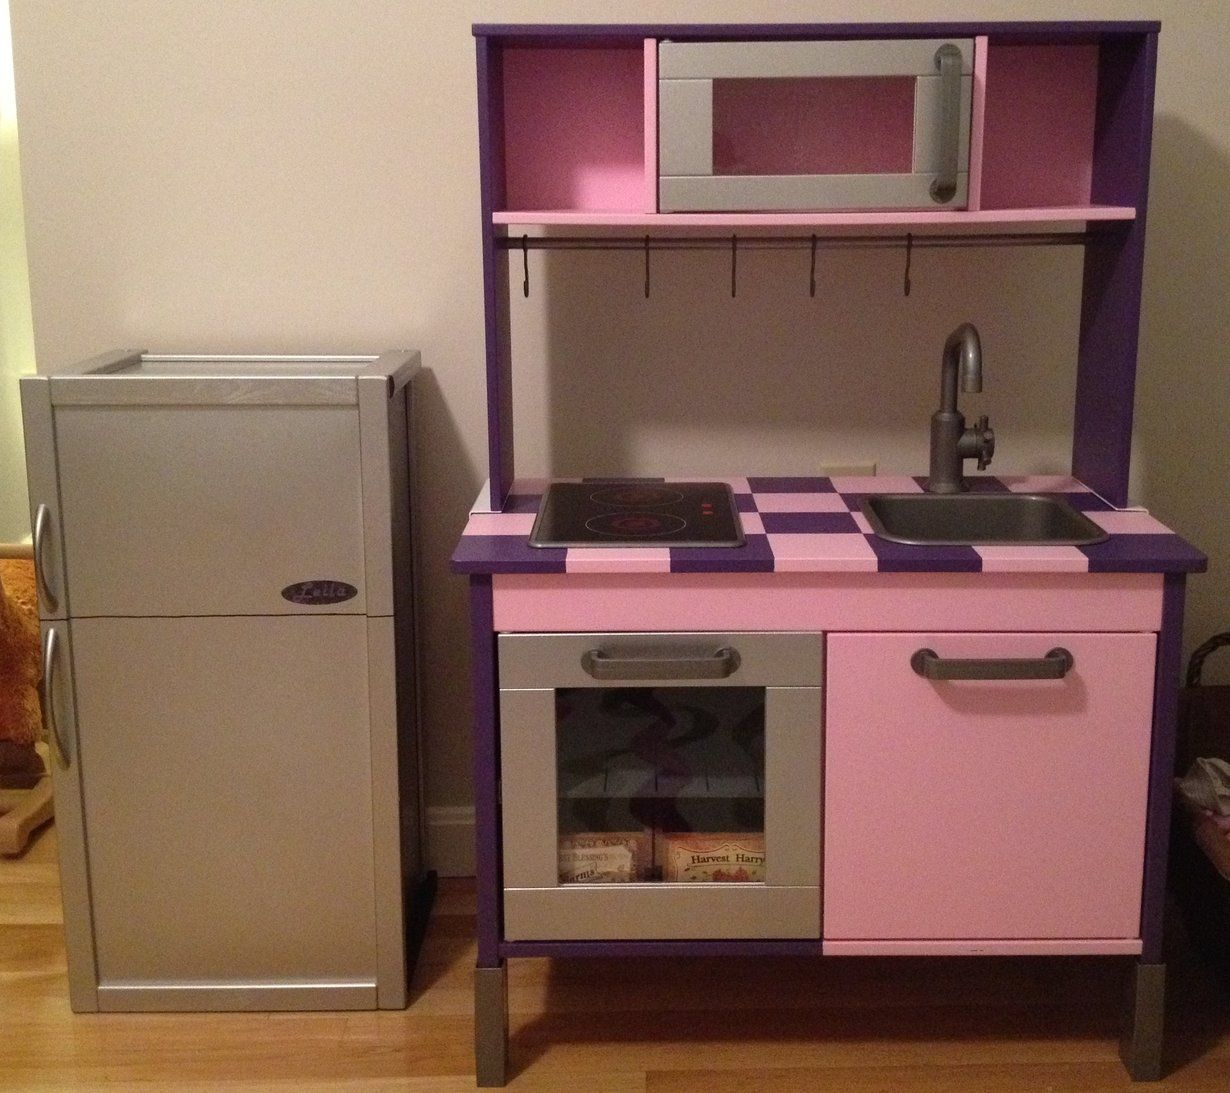 Kaufladen Mit Küche Duktig Kitchen Goes From Bland To Bling Ikea Hacks